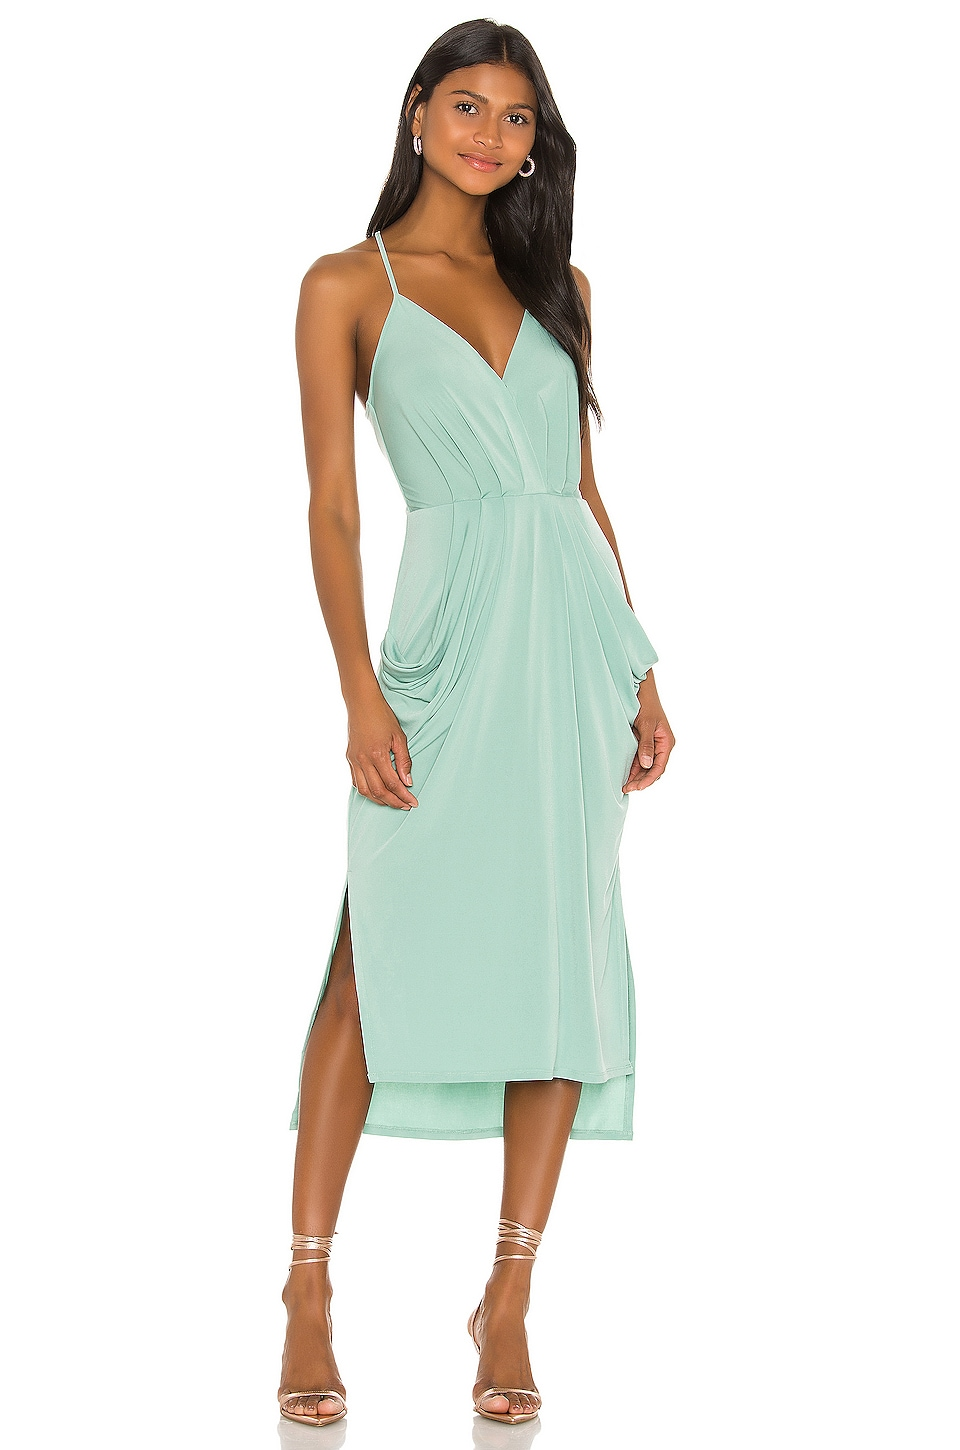 Faux Wrap Midi Dress             BCBGeneration                                                                                                                                         Sale price:                                                                       CA$ 51.34                                                                  Previous price:                                                                       CA$ 105.38 13